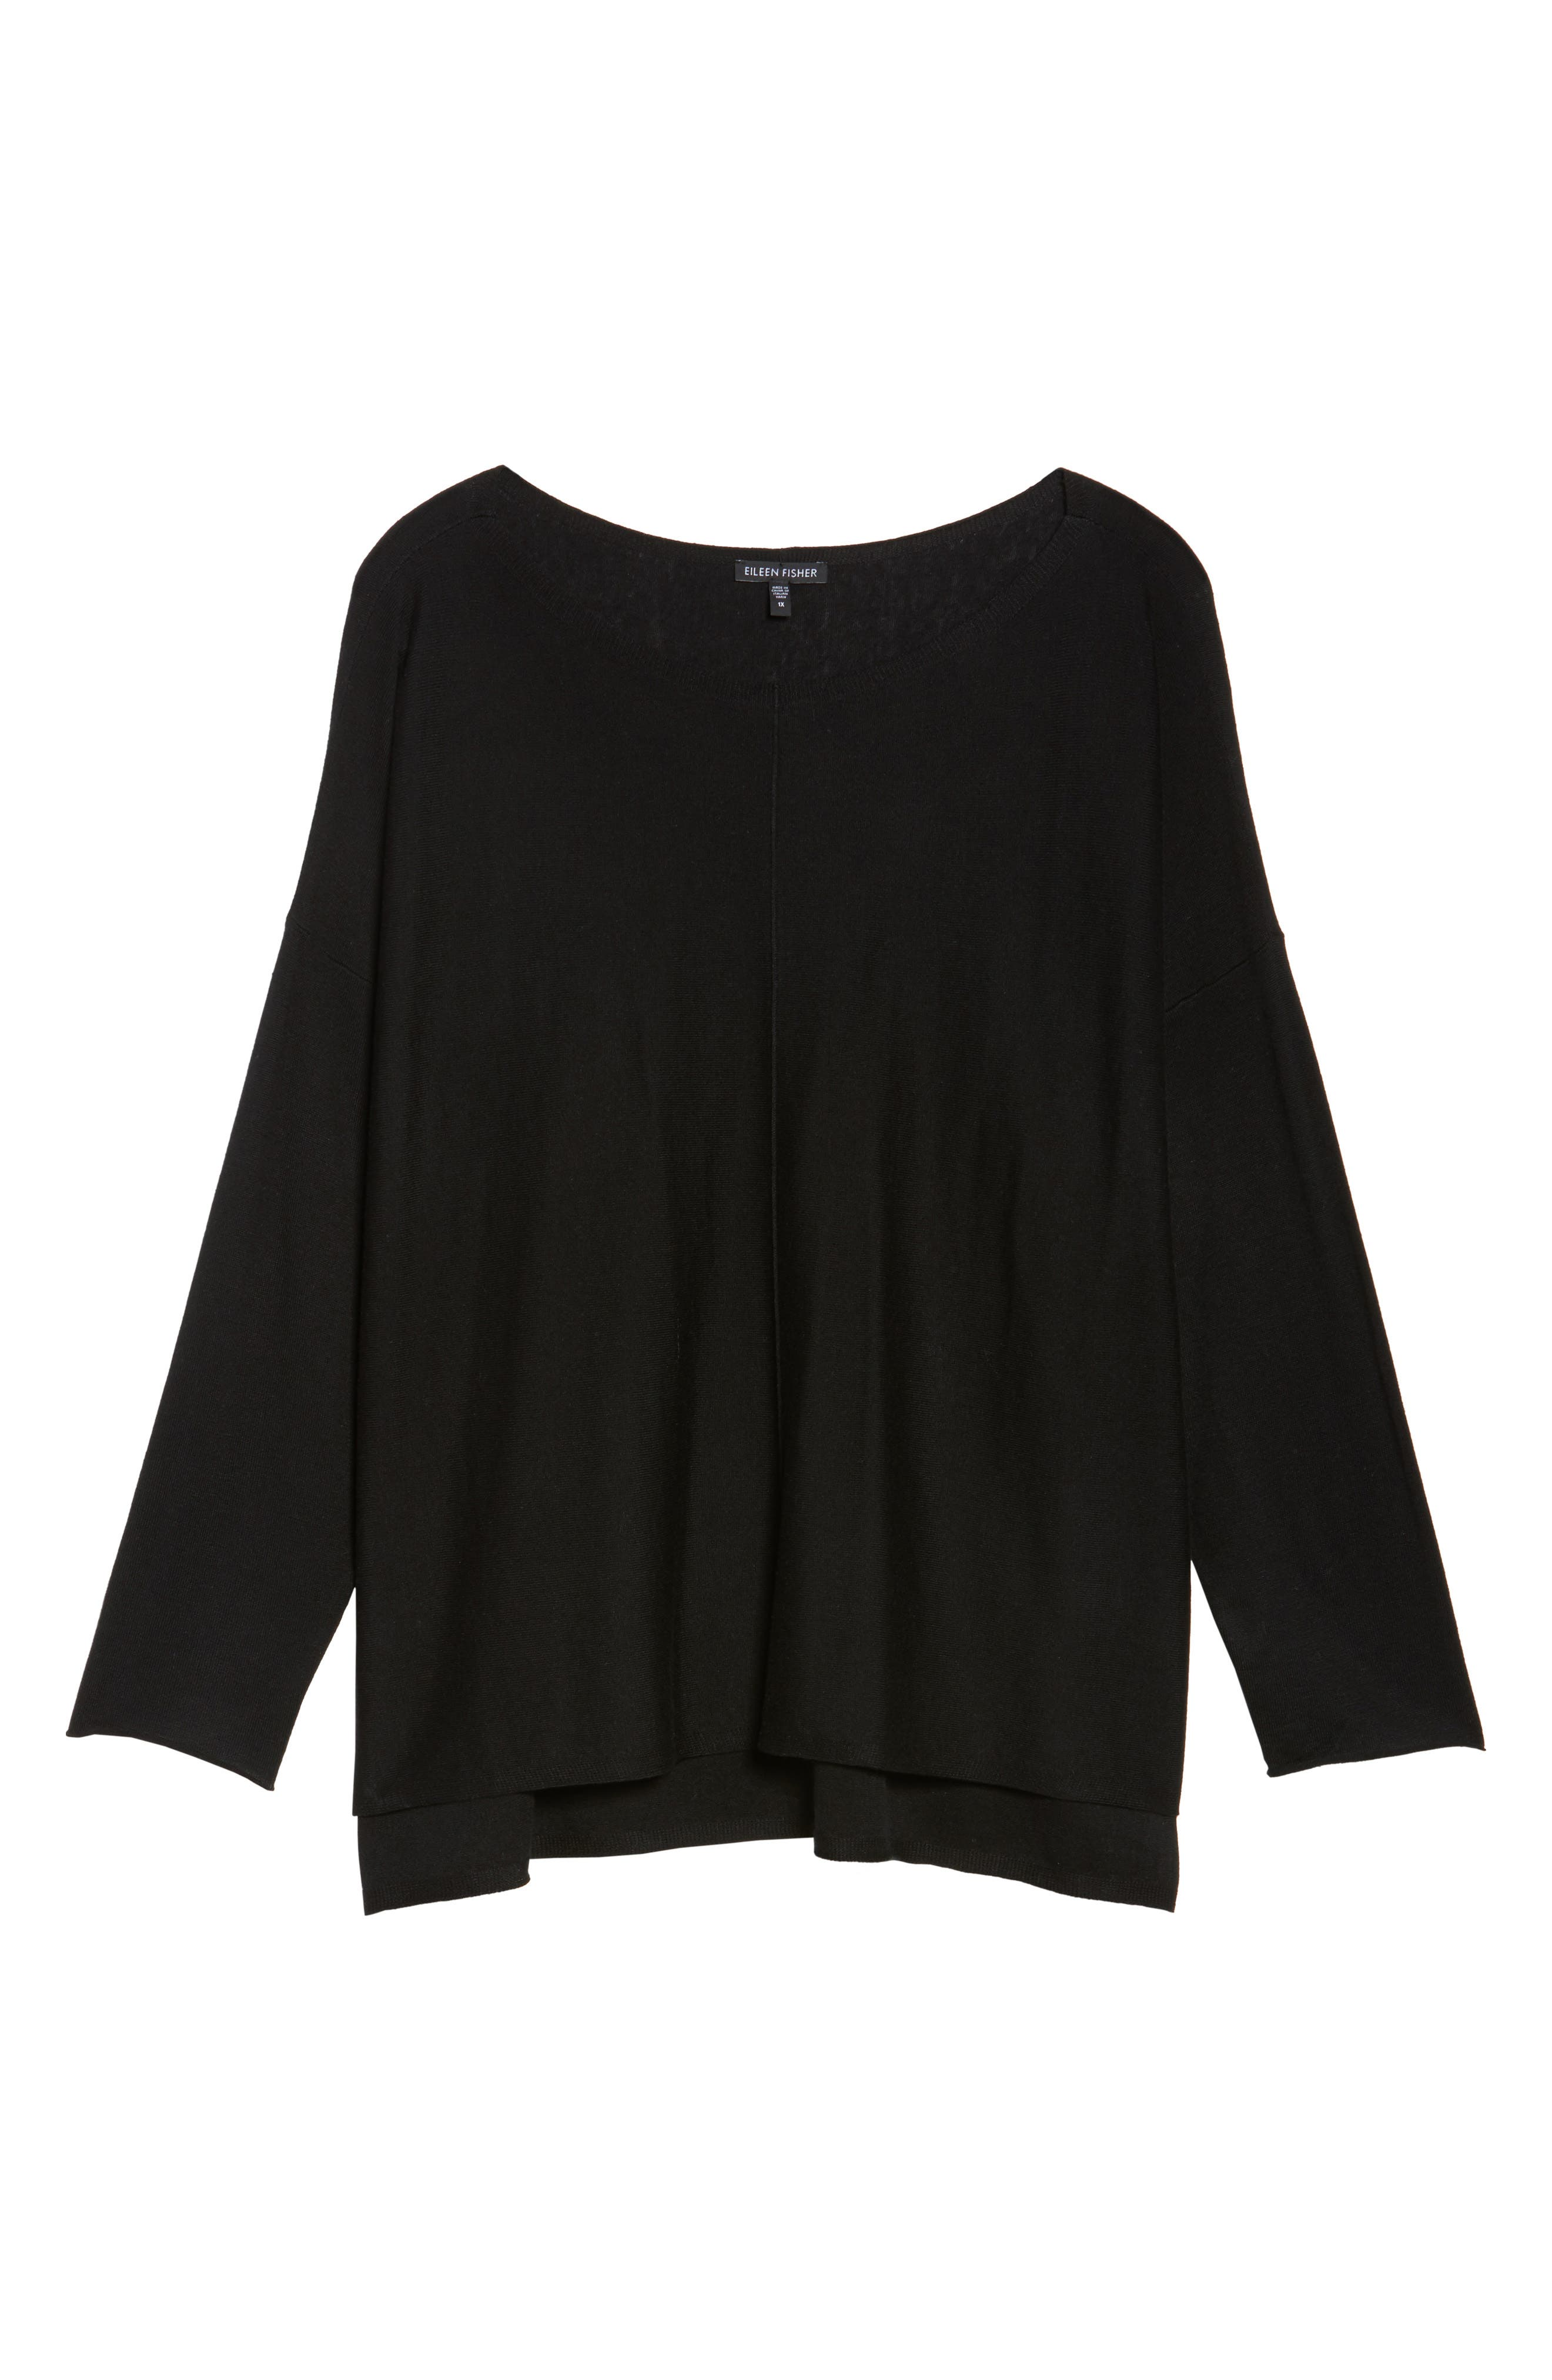 Tencel<sup>®</sup> Lyocell Blend Sweater,                             Alternate thumbnail 36, color,